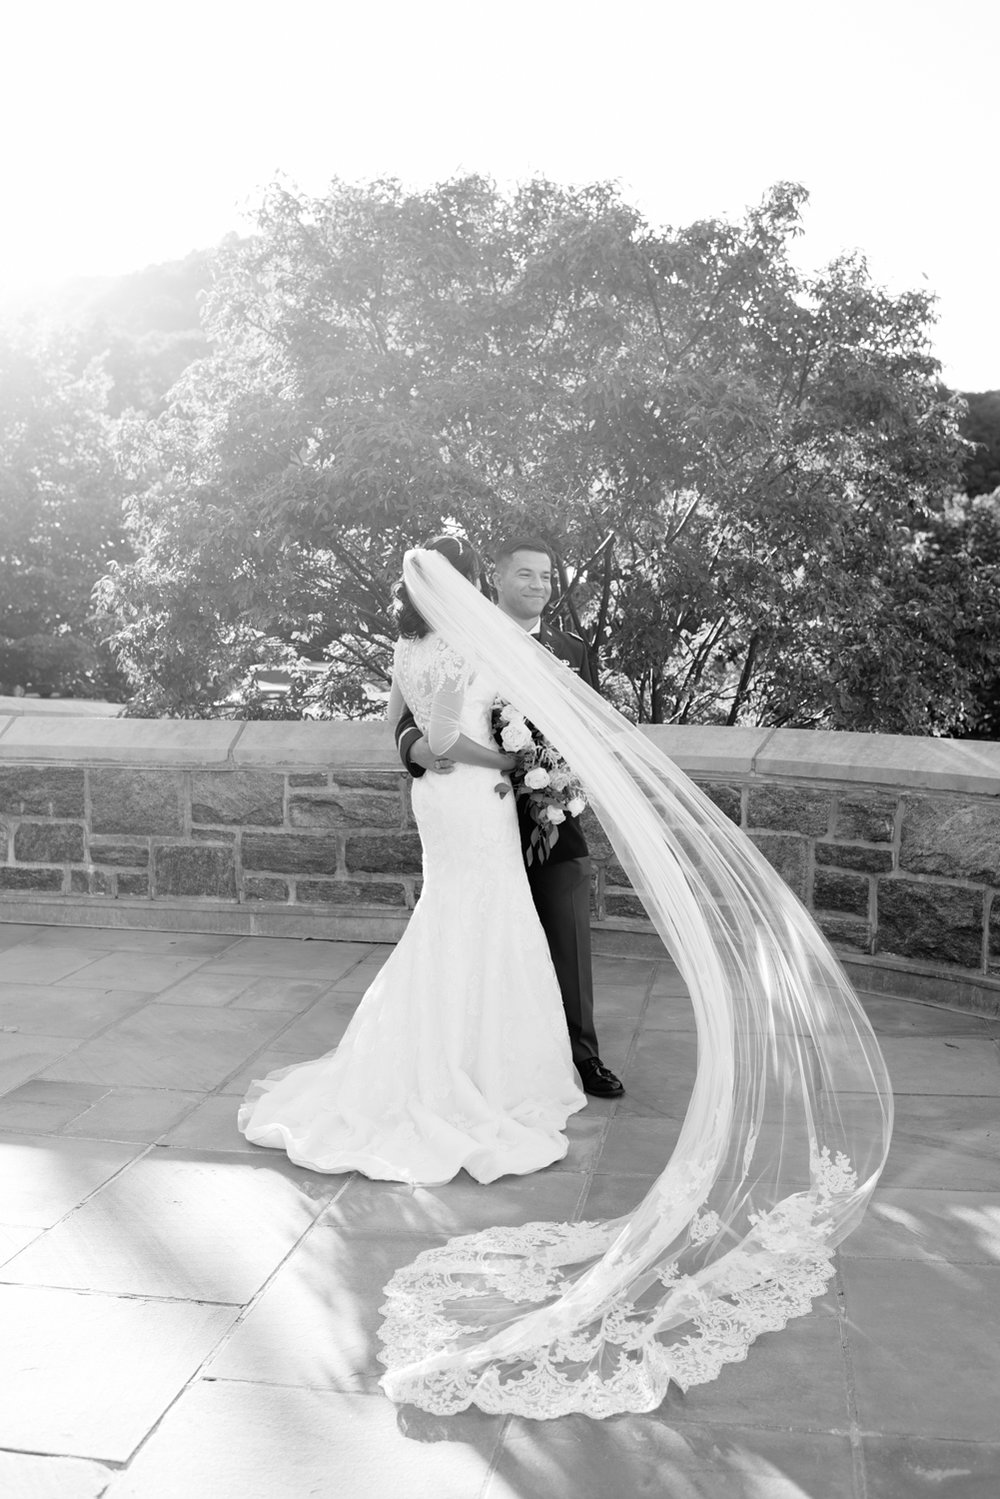 West Point Wedding- Mari + Dalton- New Jersey New York Wedding Photographer Olivia Christina Photo-145.jpg